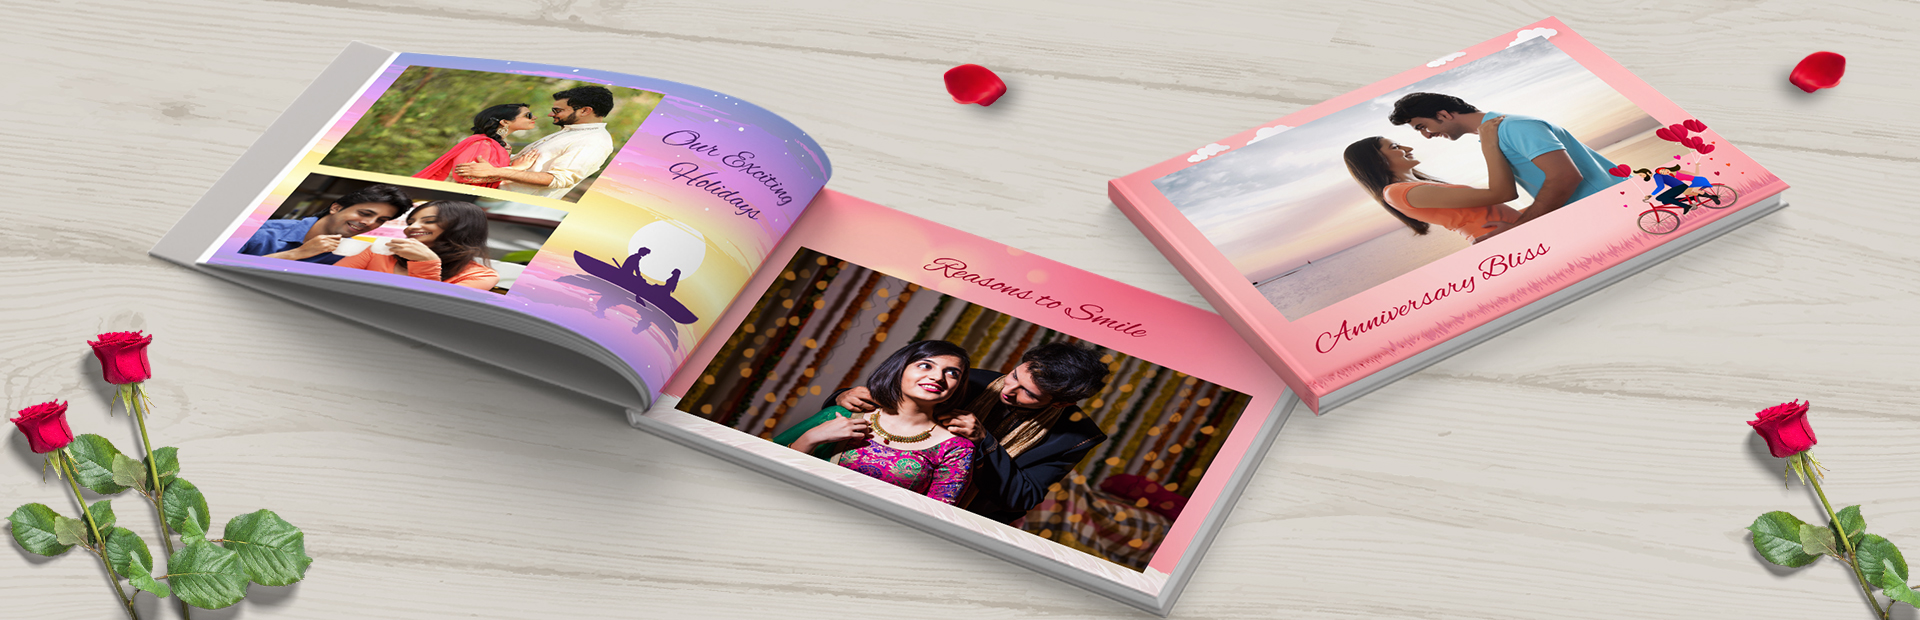 Anniversary Bliss Photo Books Online